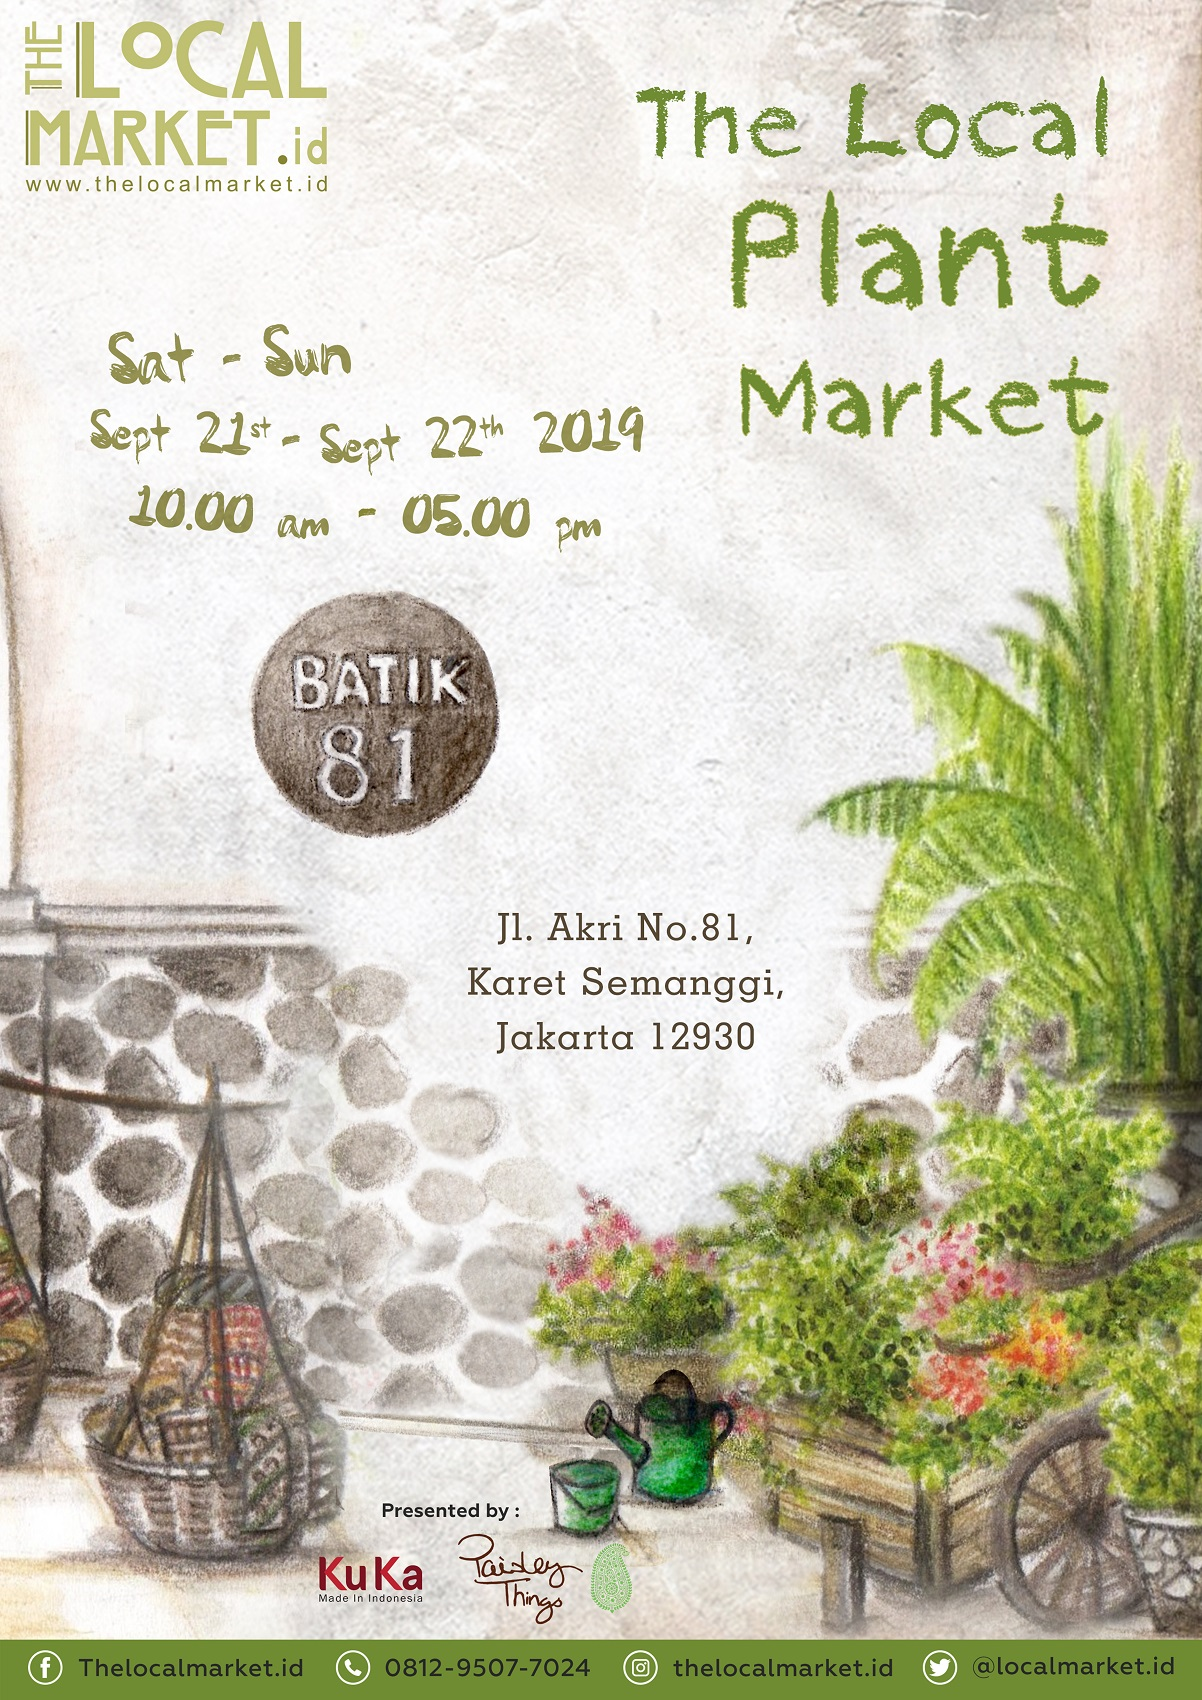 The Local Market - Plant Market @ Batik 81